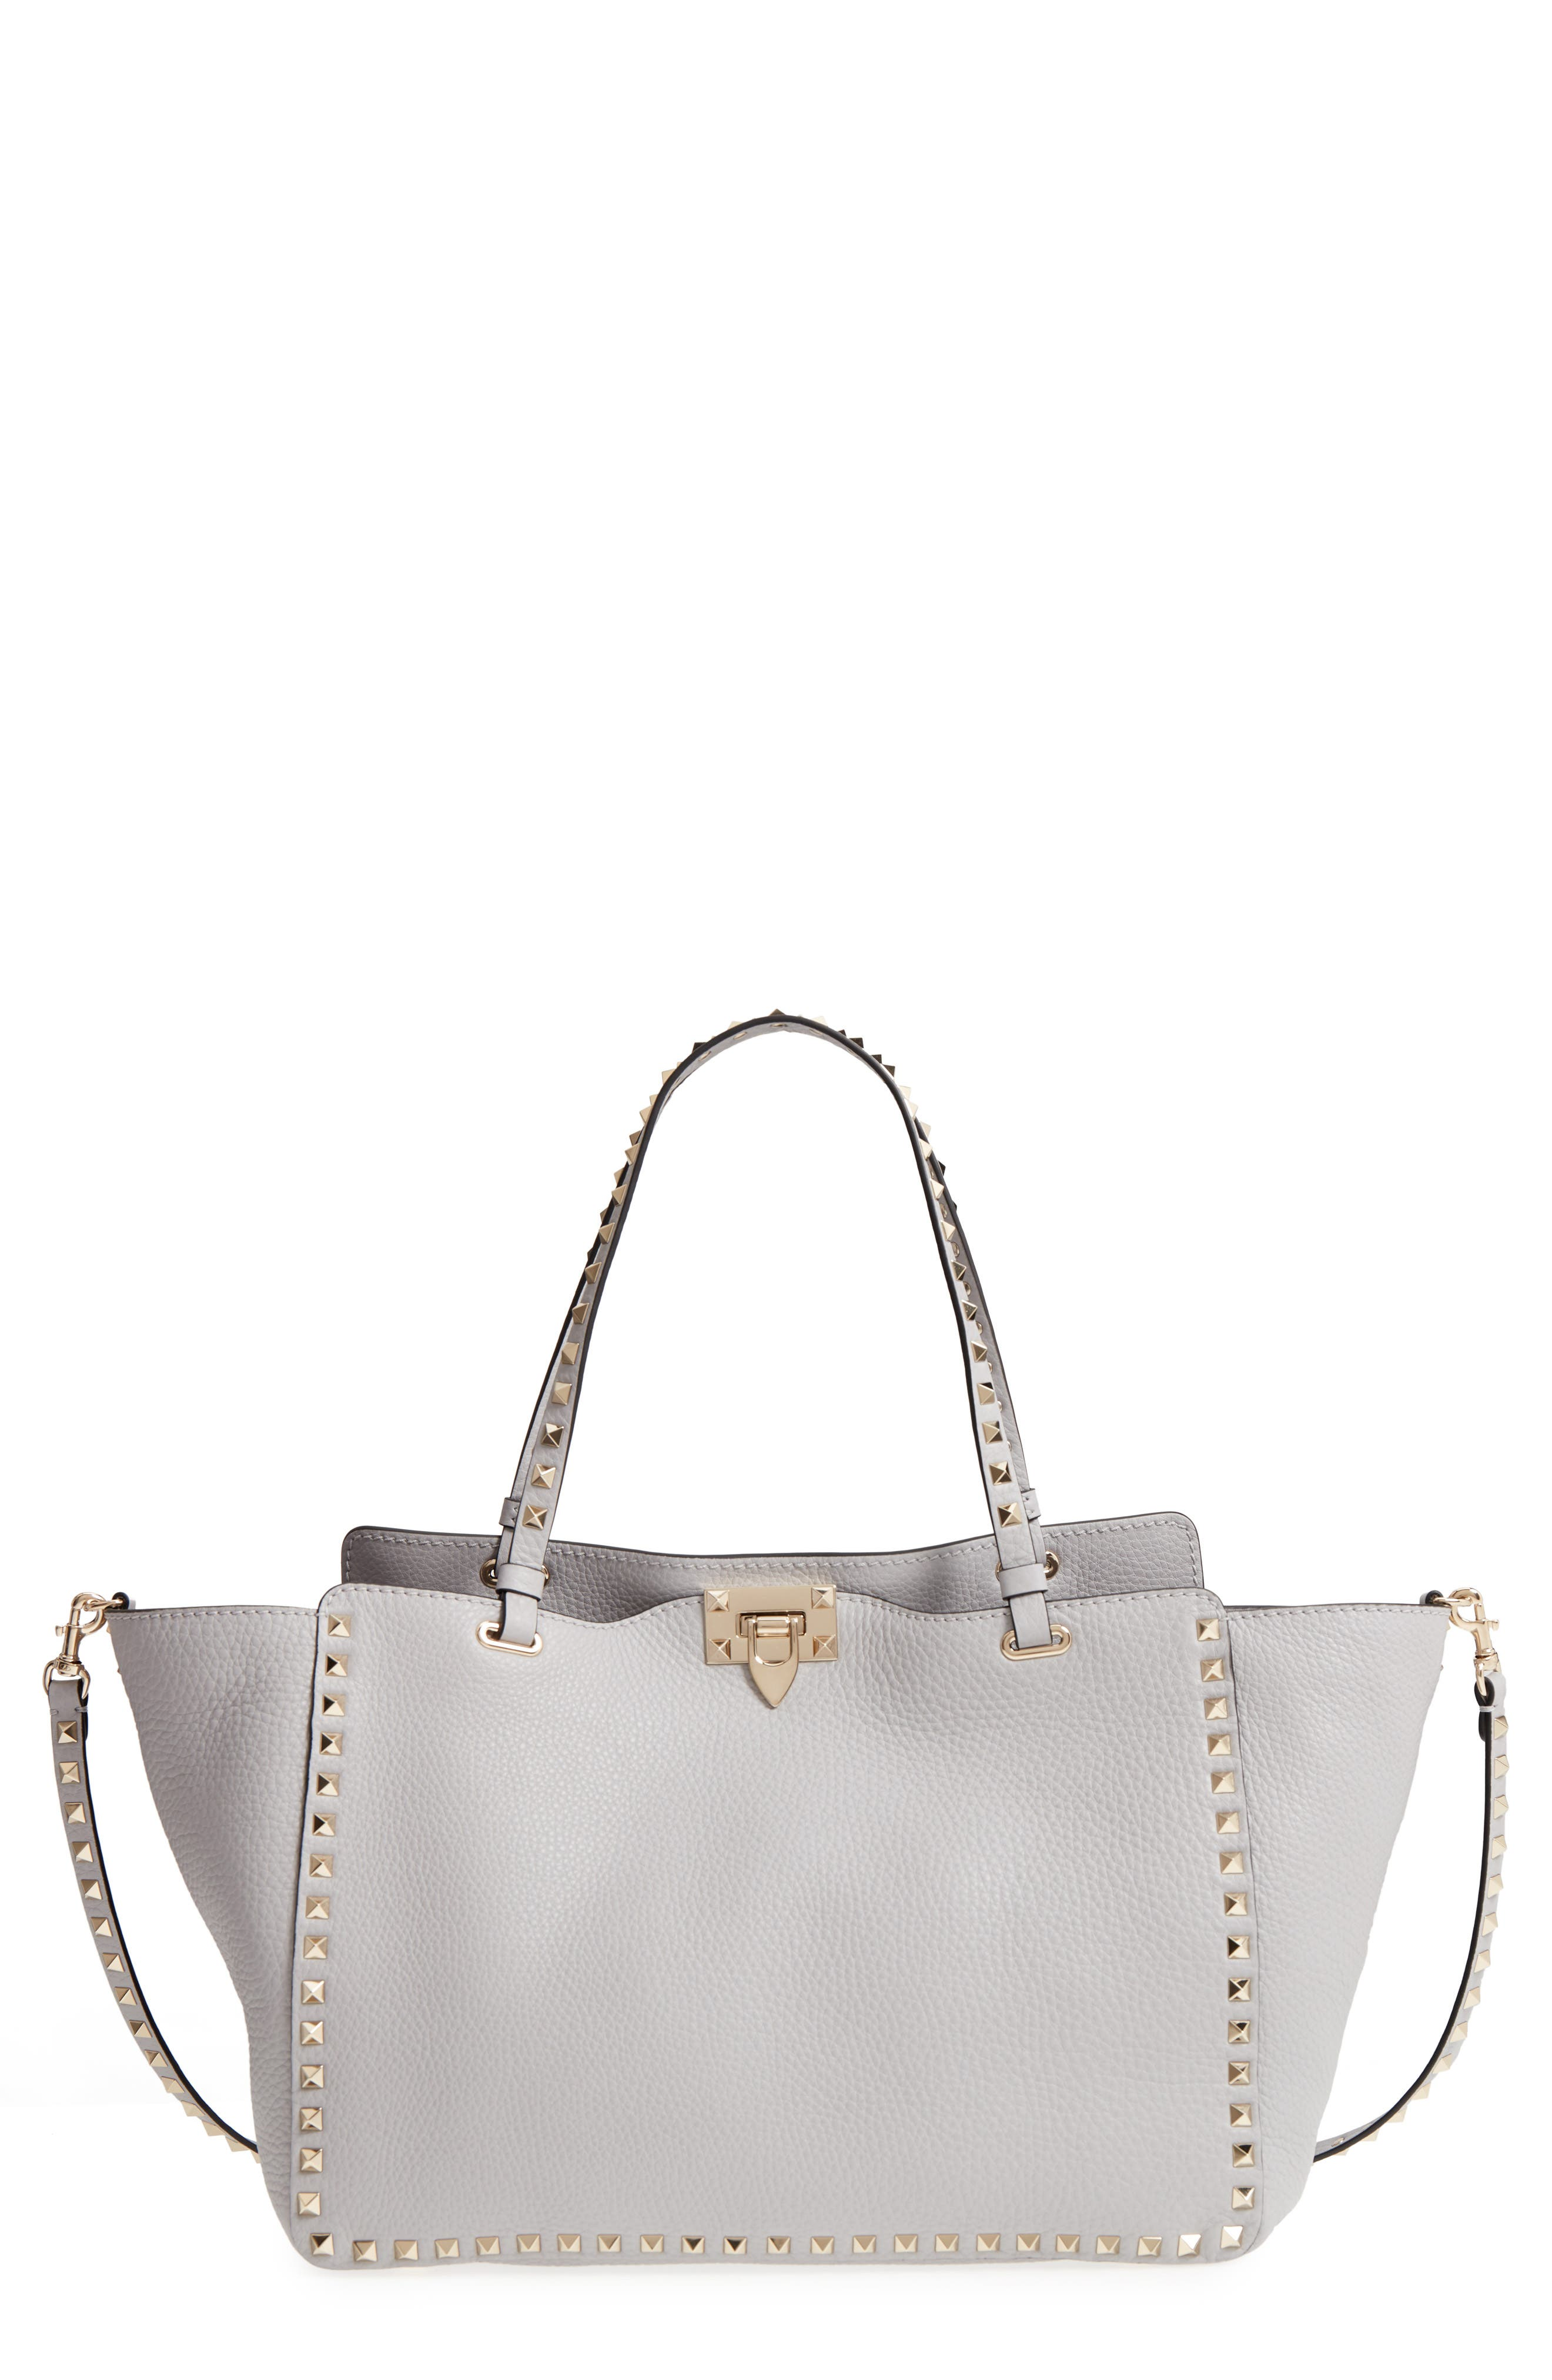 Medium Rockstud Leather Tote,                             Main thumbnail 1, color,                             PASTEL GREY